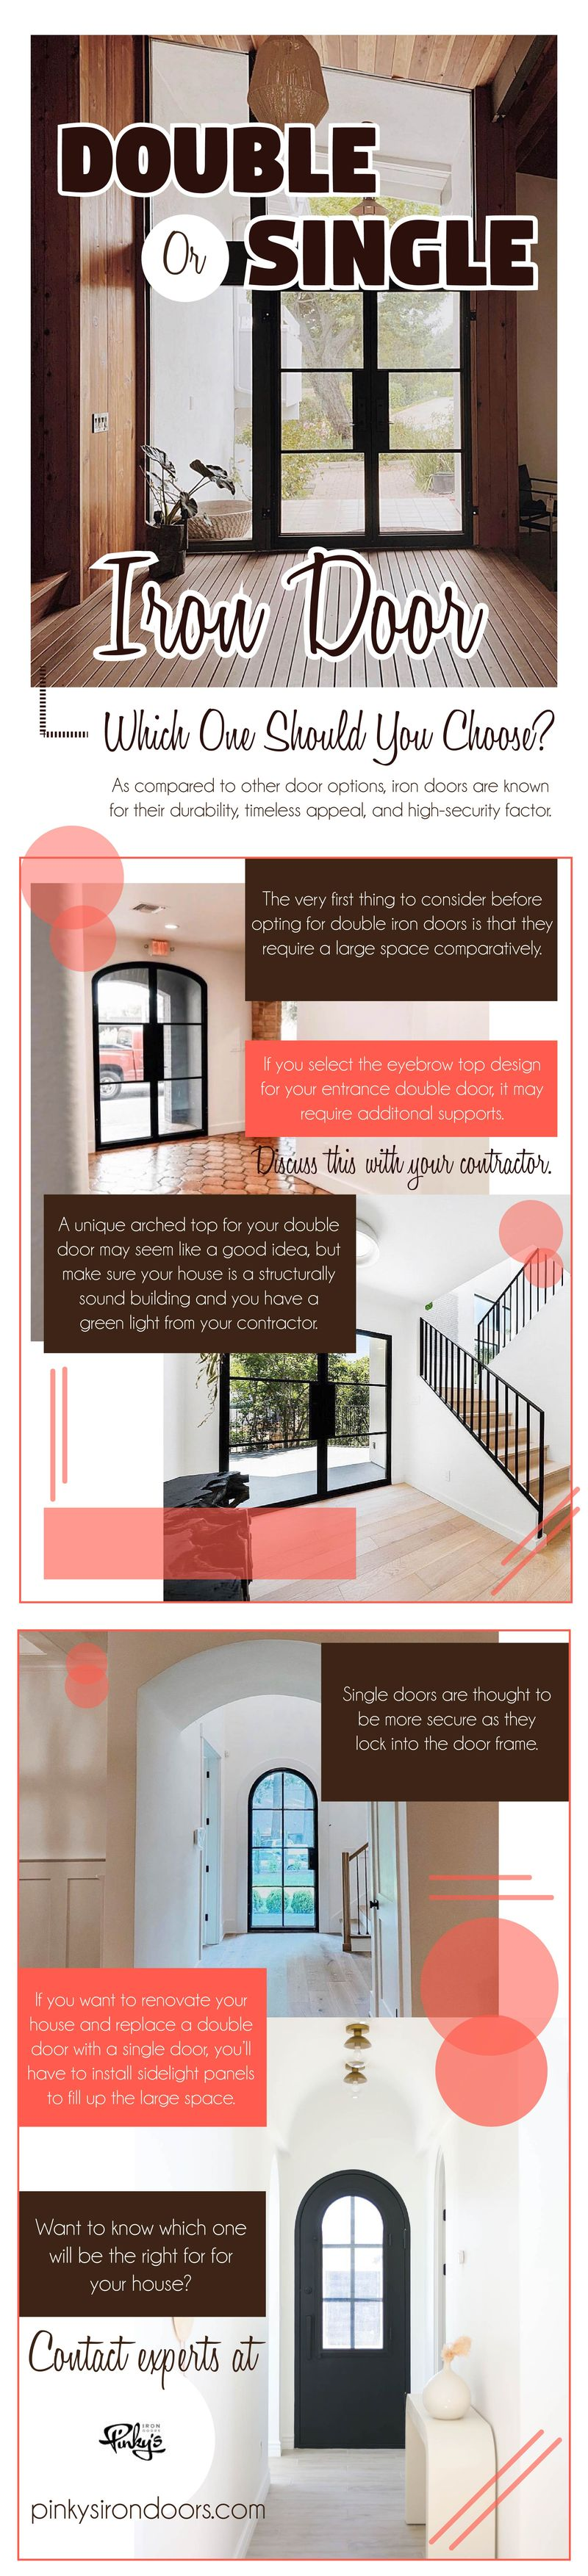 Double Or Single Iron Door Which One Should You Choose?